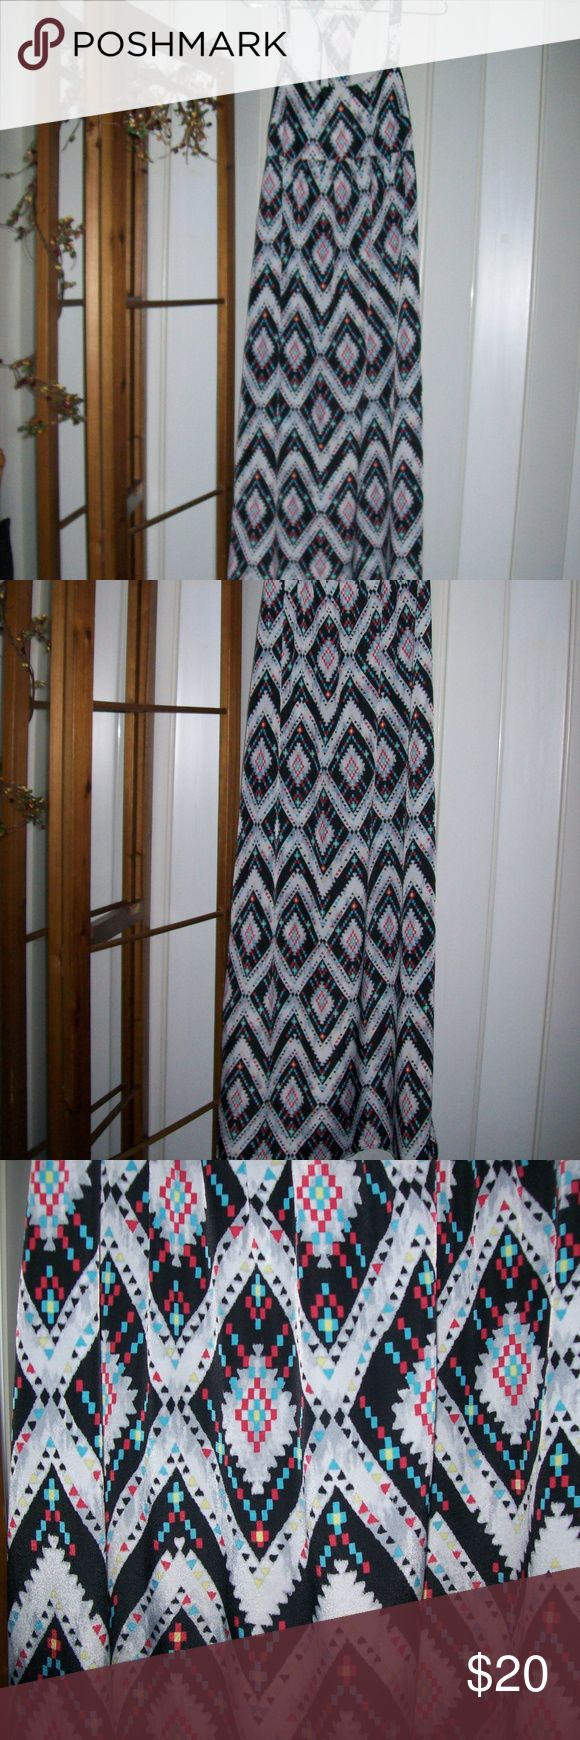 """love FIRE Vibrant Multi Color Maxi Dress NEW Beautiful vibrant multi color print maxi dress from .....love FIRE..T-Back with light elastic in the back as well. 100% polyester and Measures 59"""" long and 16"""" across the chest. Size Medium.  New Without Tags! No Defects and Thank You For Looking! love FIRE Dresses Maxi"""